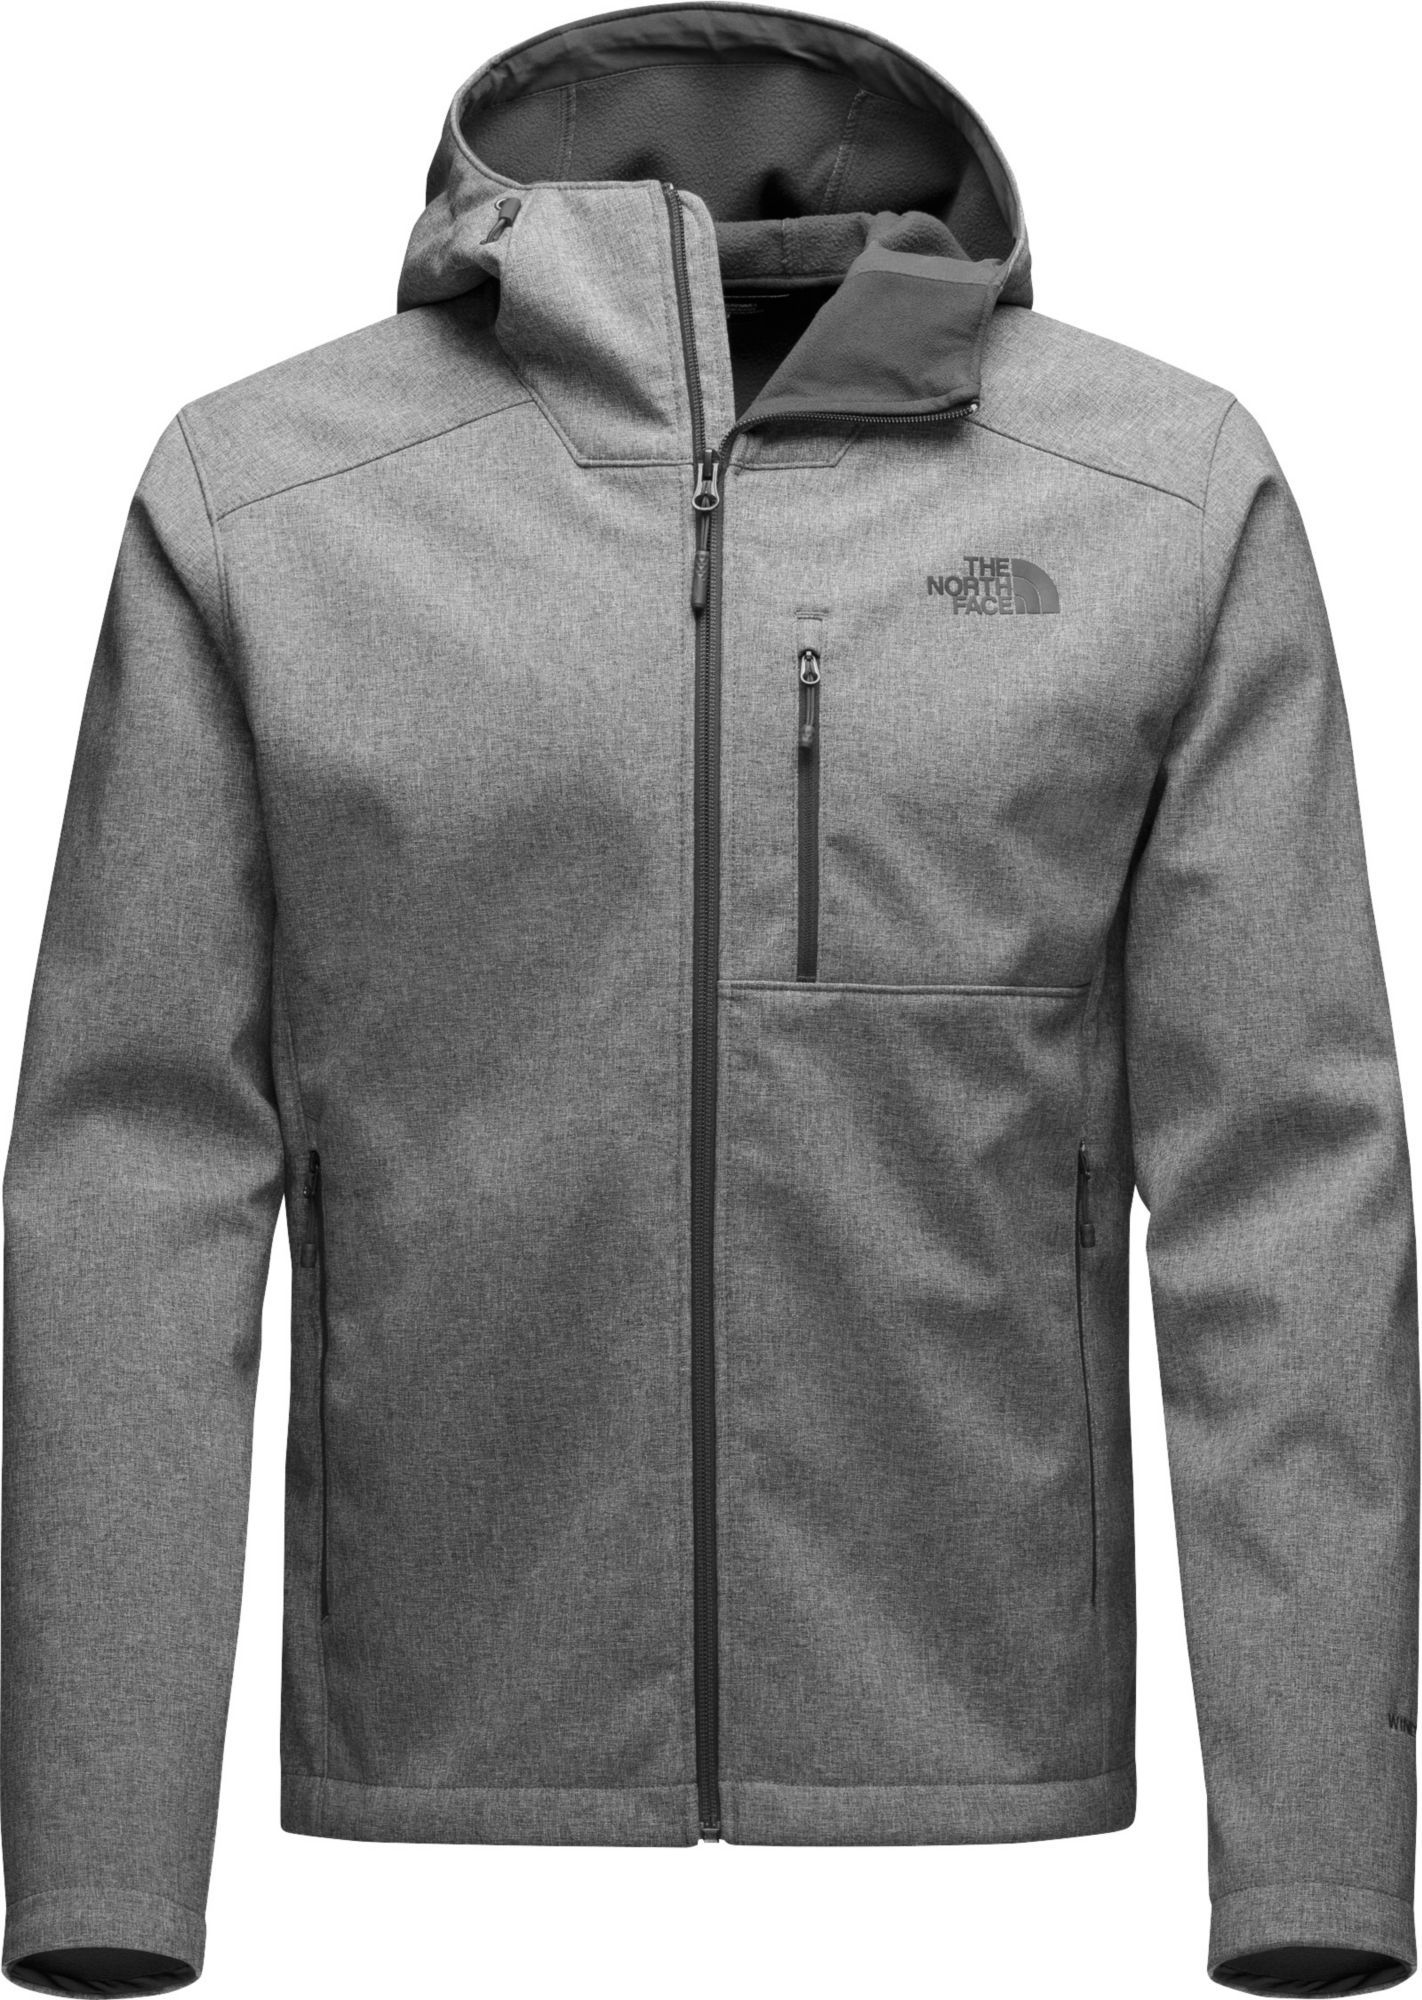 6522cd298 The North Face Men's Apex Bionic 2 Hooded Soft Shell Jacket ...